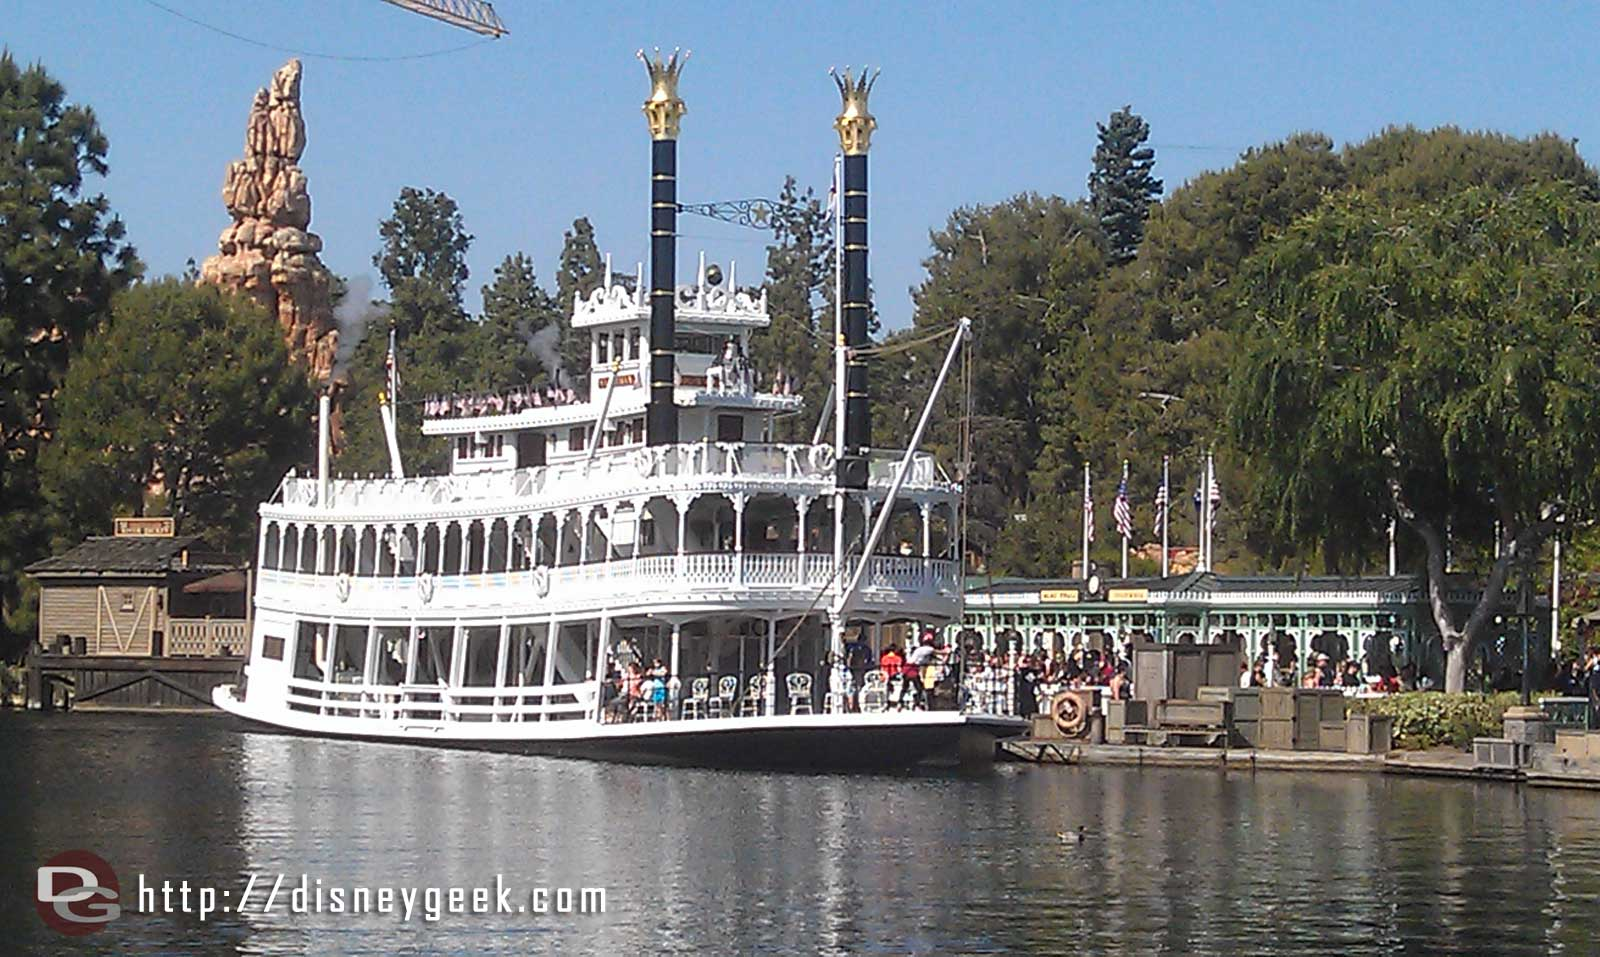 The Mark Twain the Rivers of America